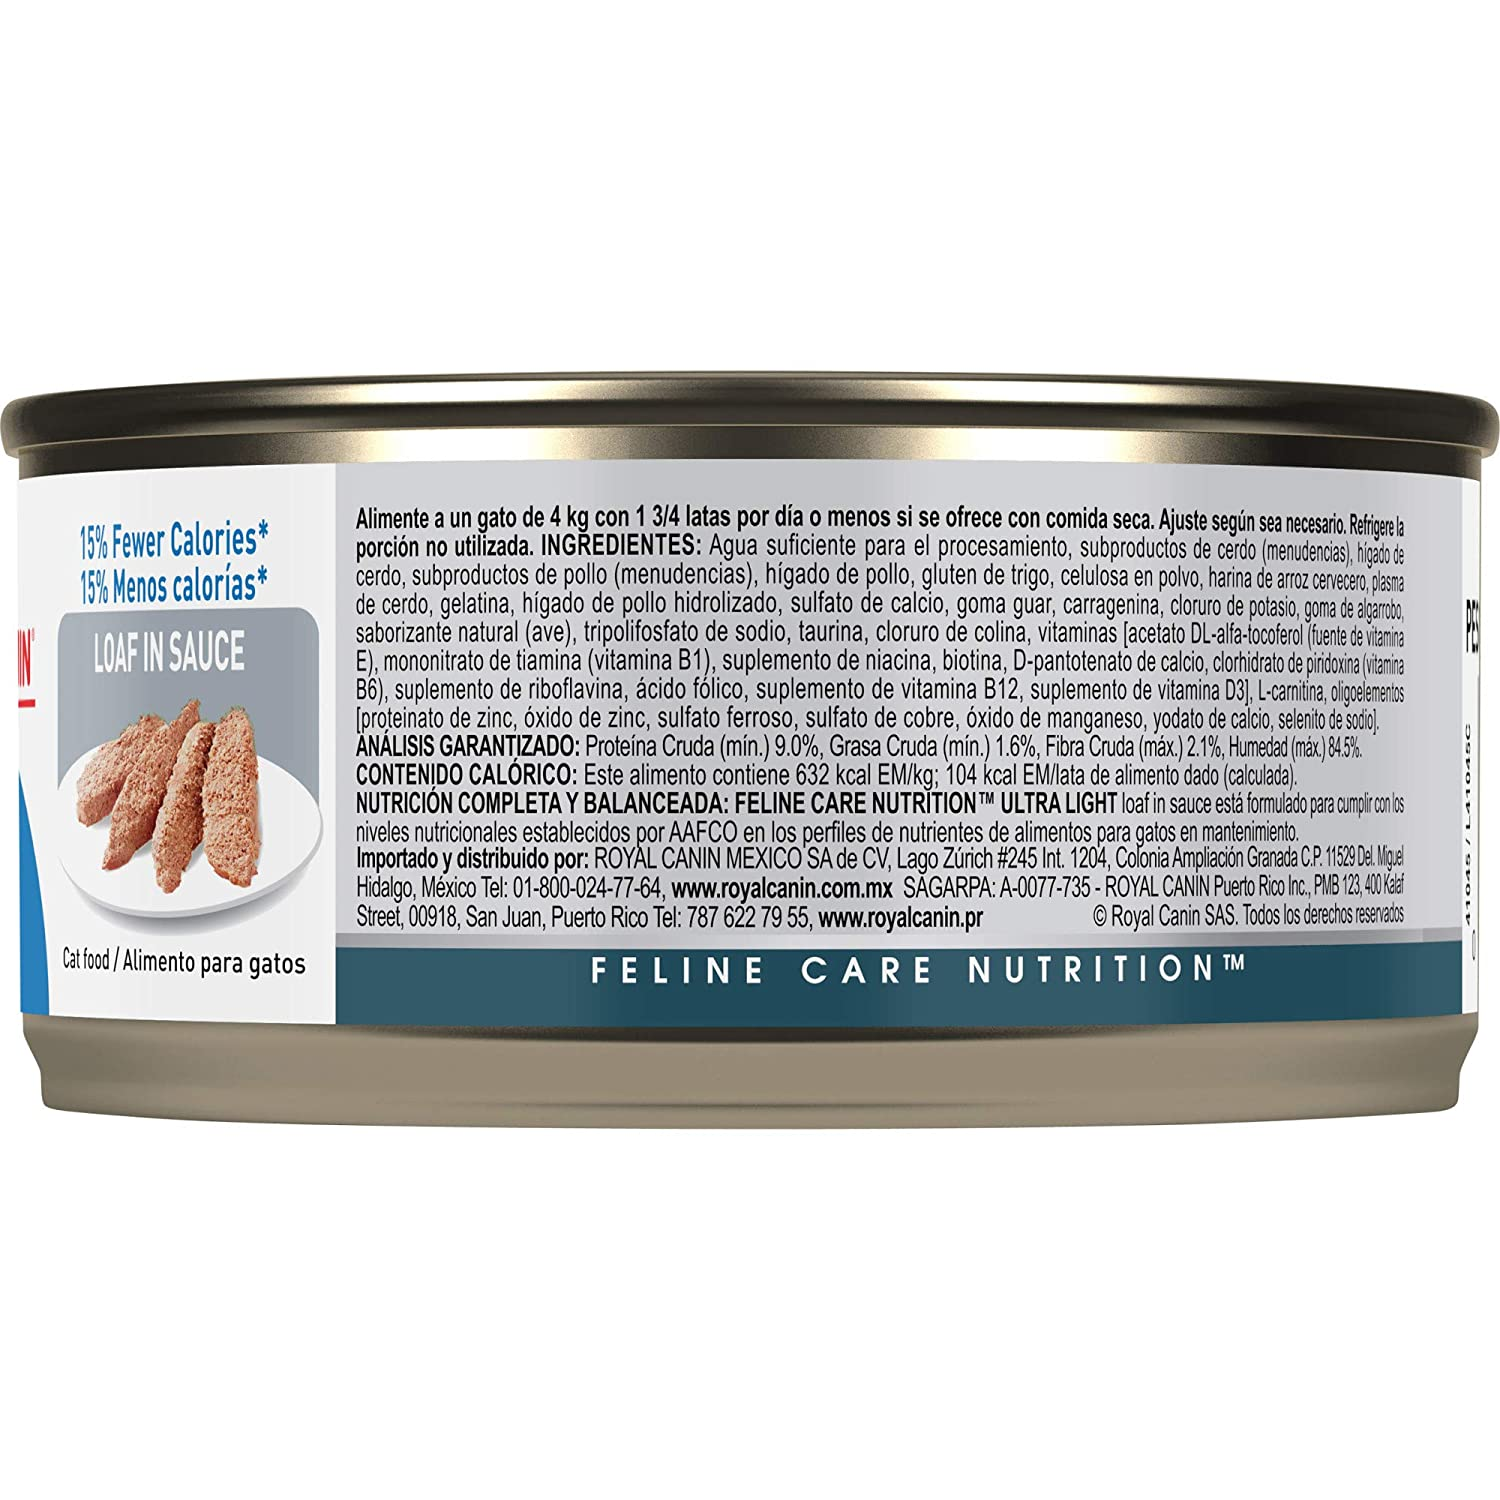 Amazon.com : Royal Canin Feline Health Nutrition Ultra Light 15% Fewer Calories Loaf in Sauce Canned Cat Food, 5.8 Ounce Can (Pack of 24) : Pet Supplies